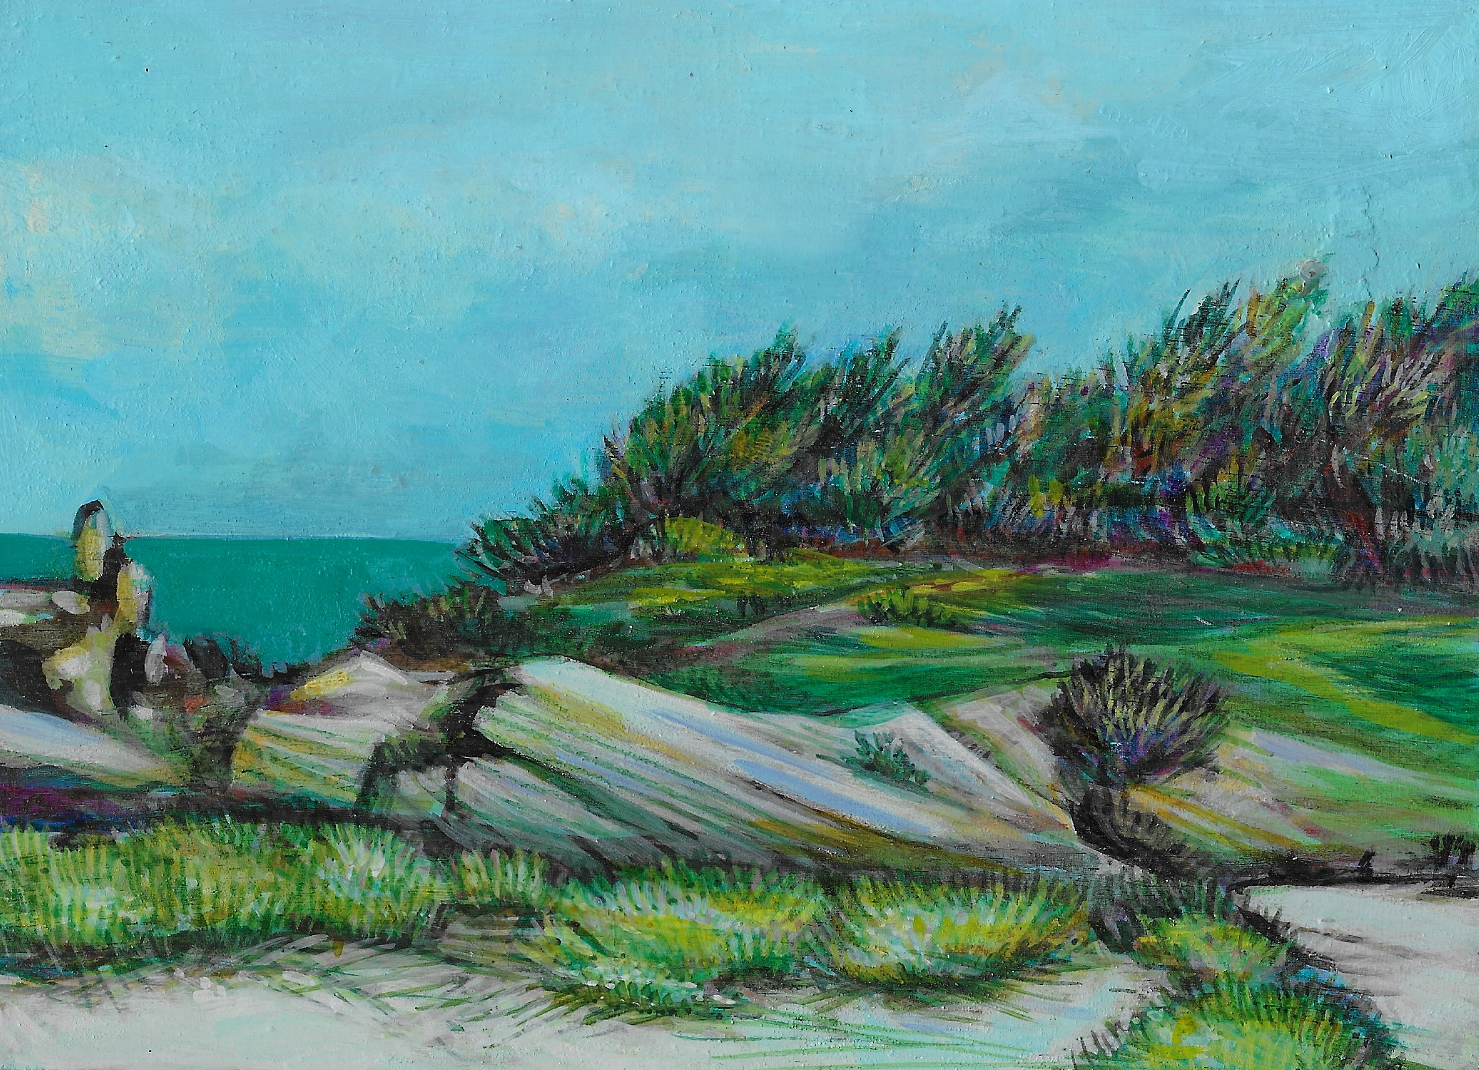 "(bermuda) east beach, 5"" x 7"", water-based media on panel, 2016"